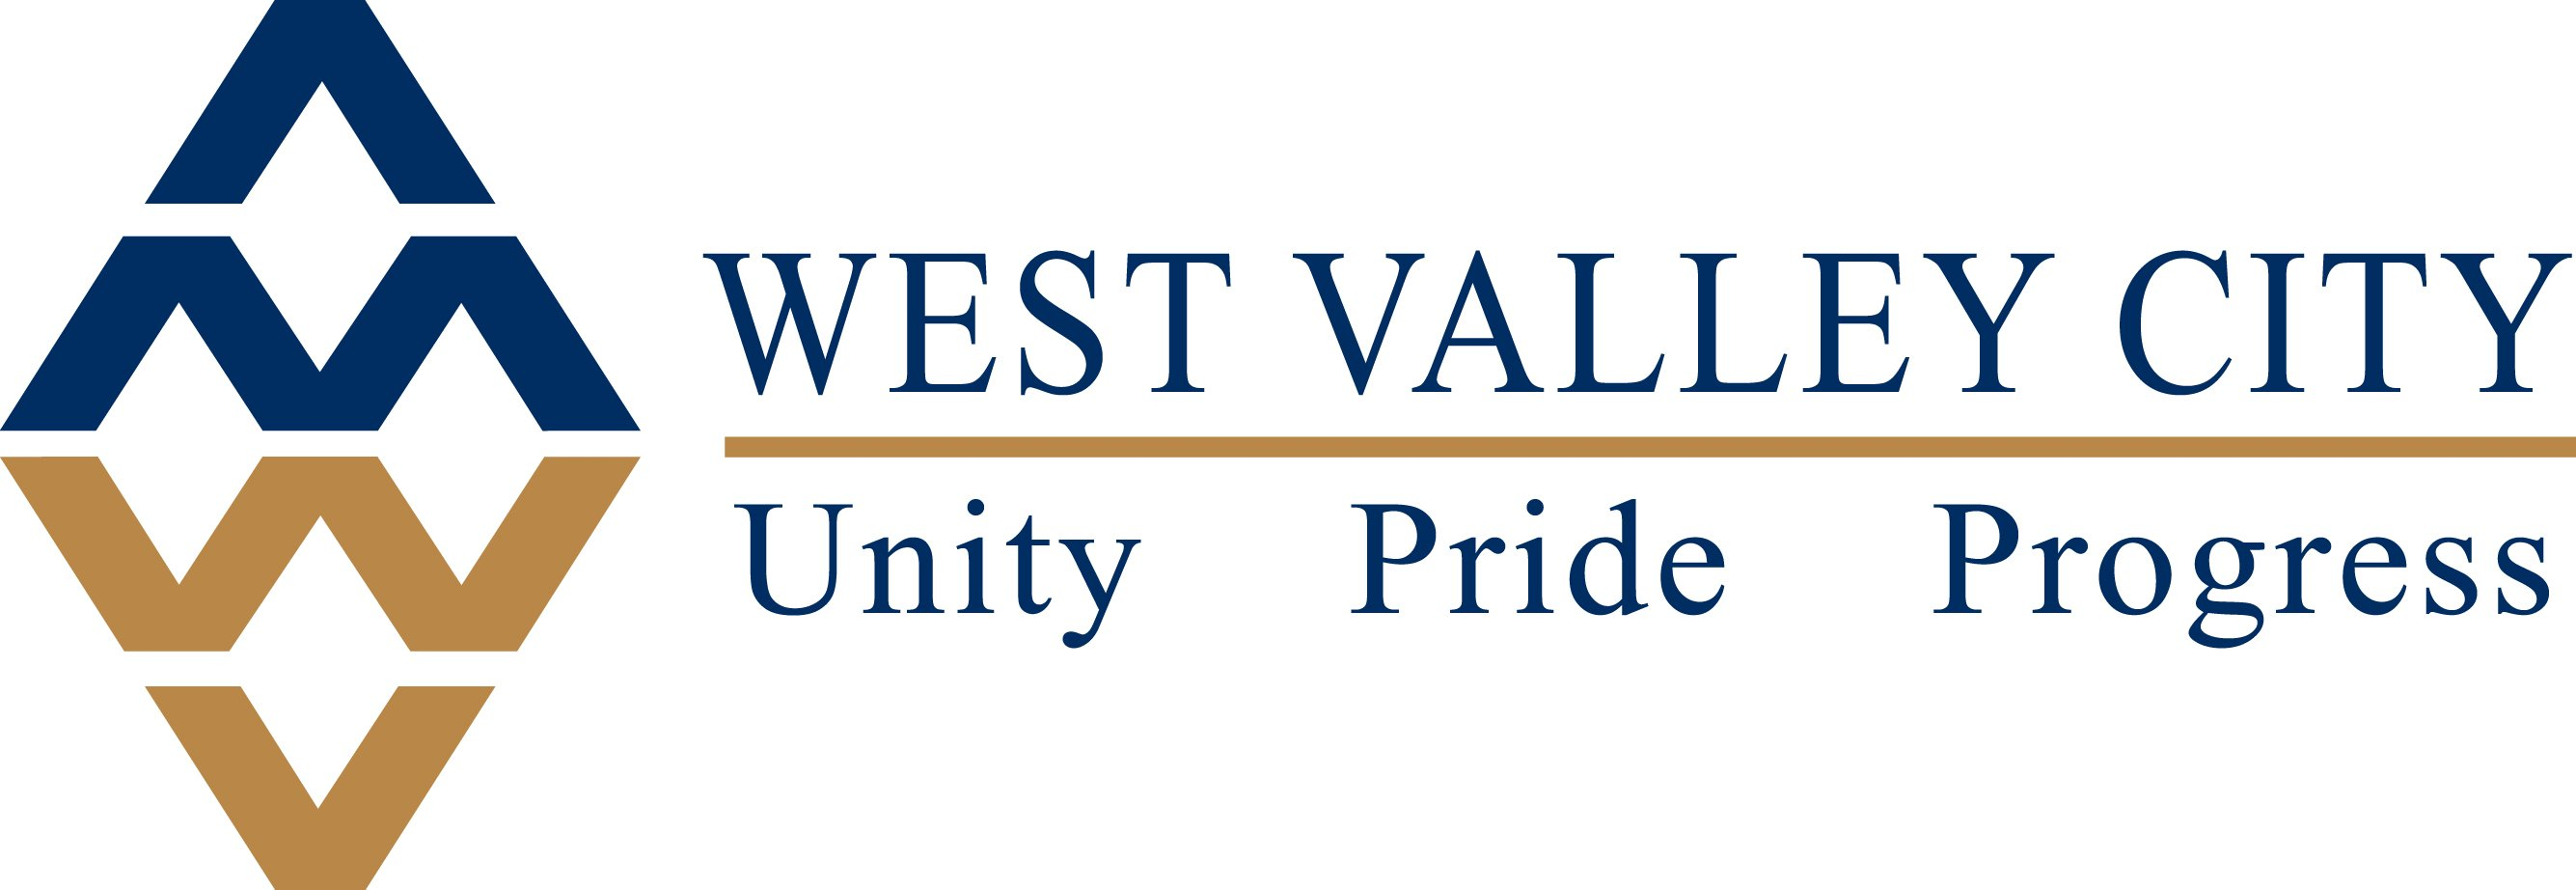 West Valley City Housing Authority